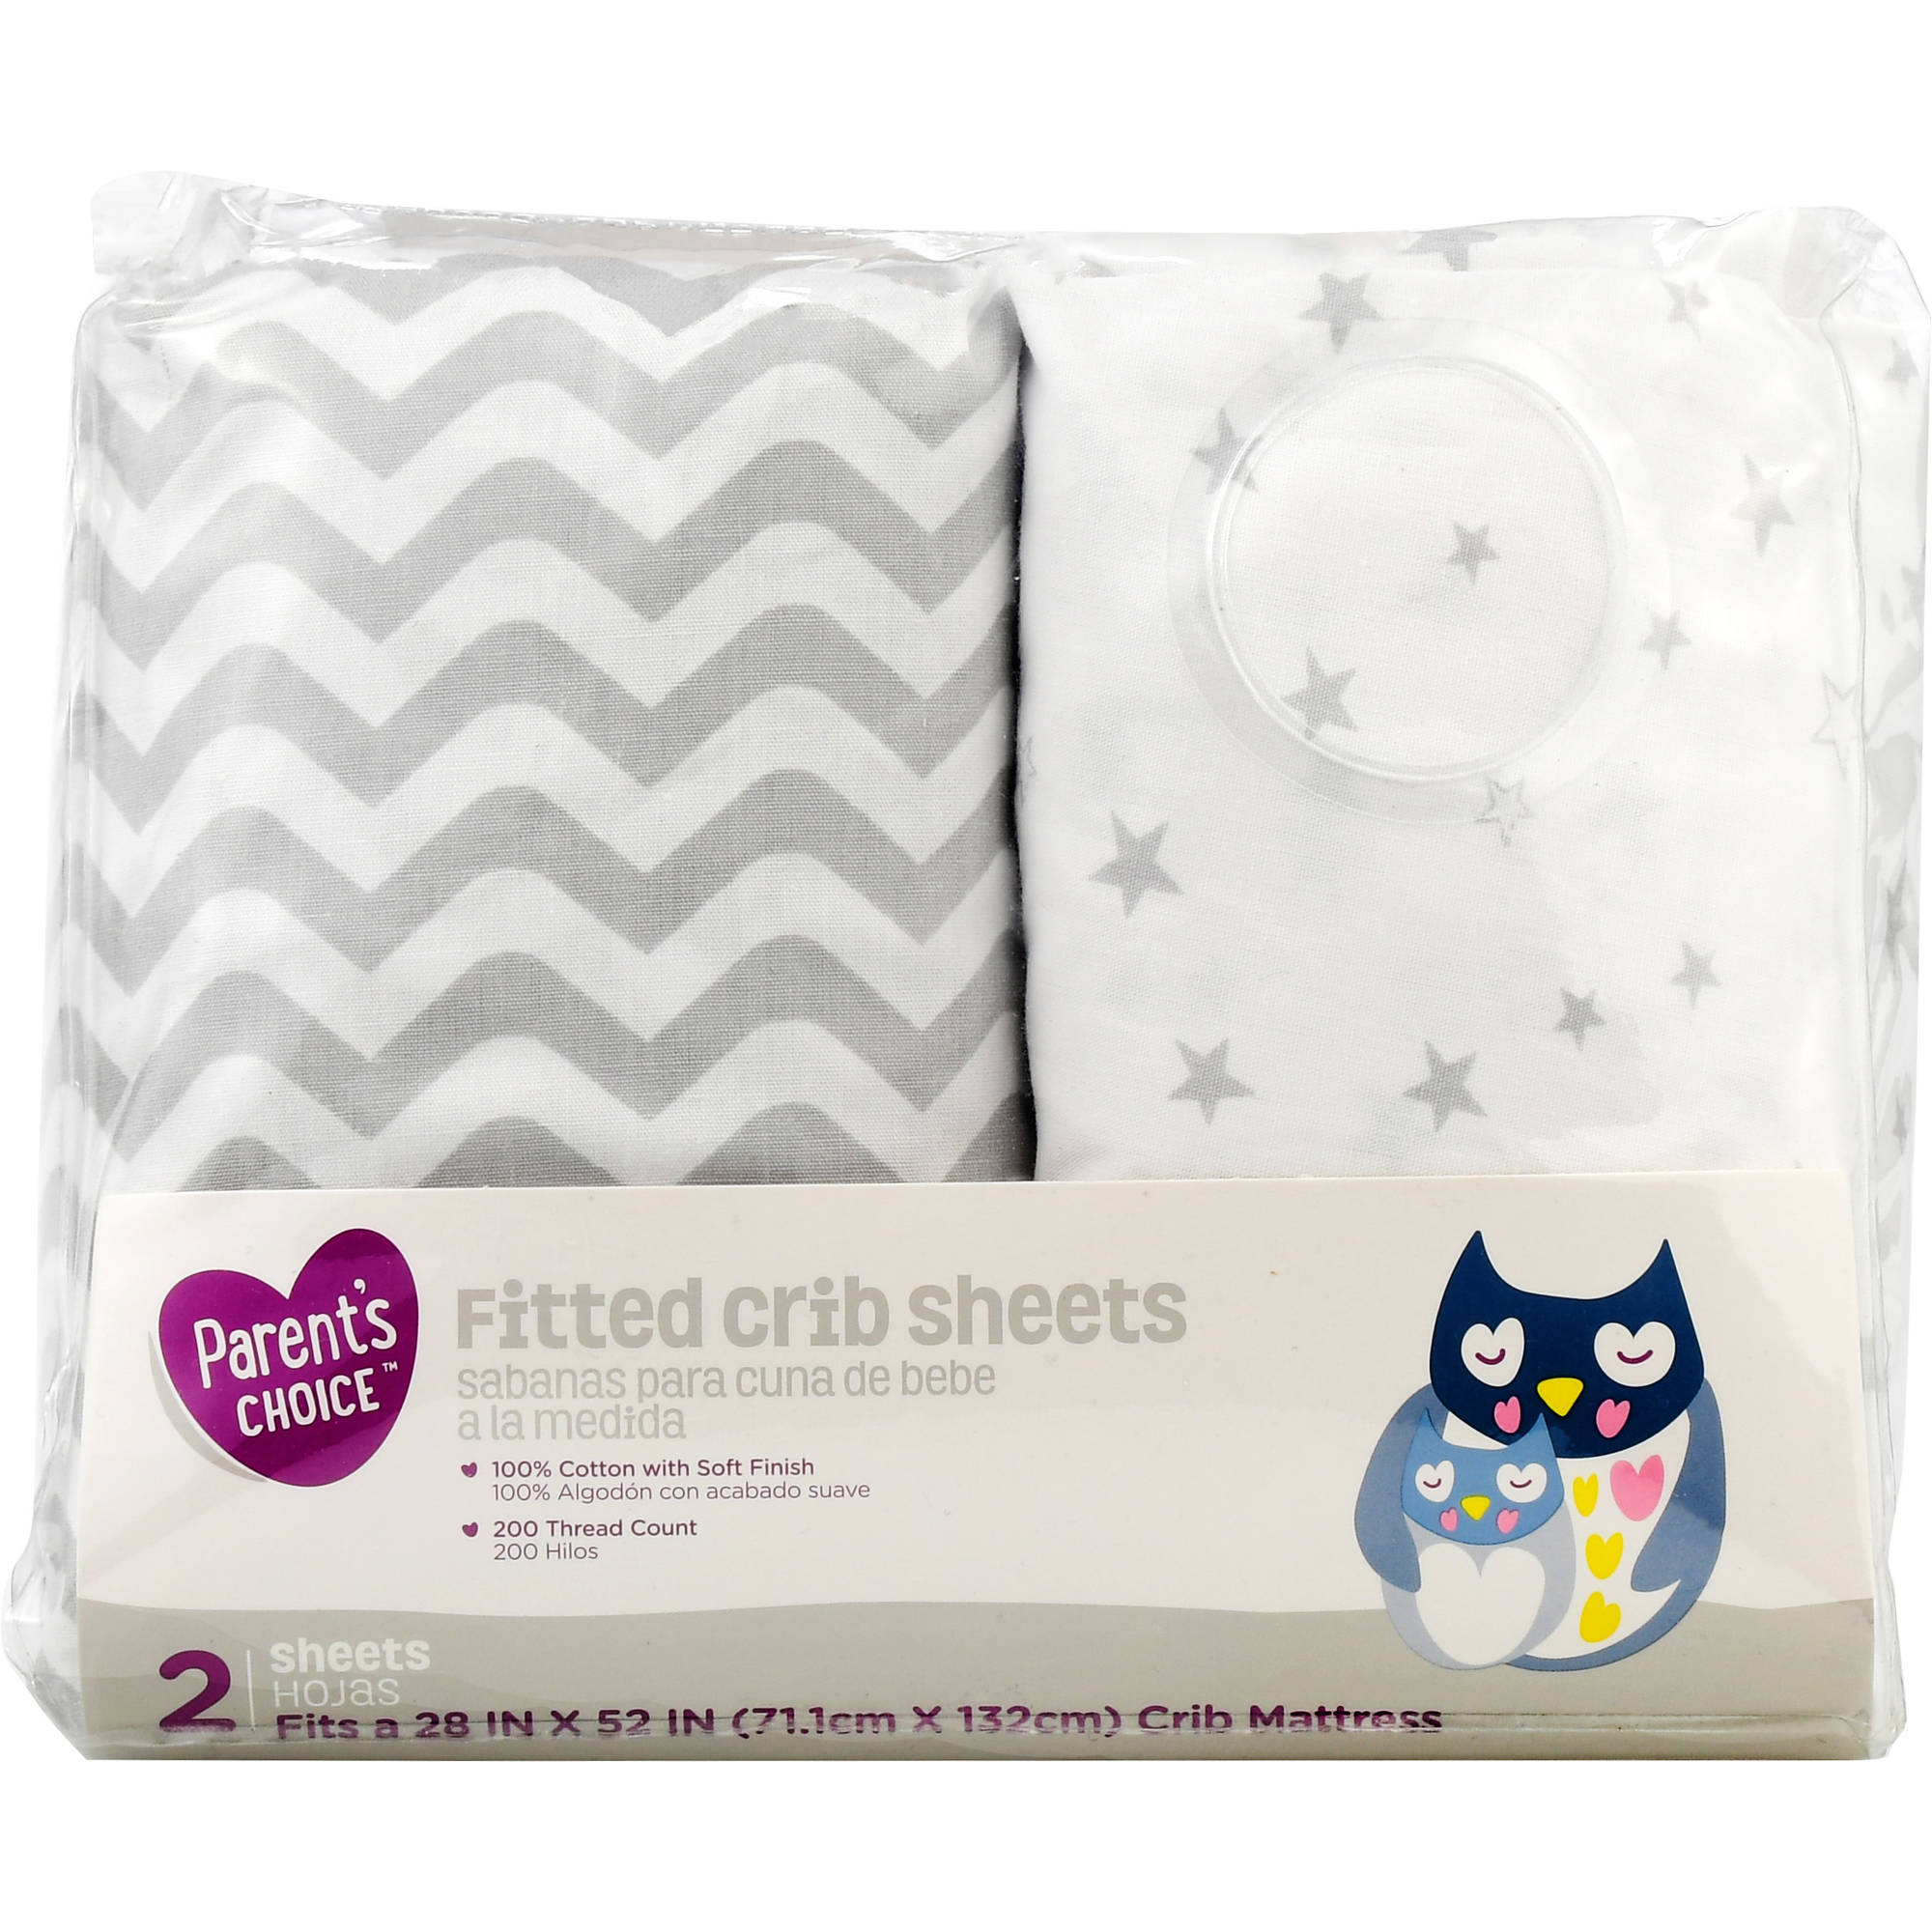 Parent's Choice Fitted Crib Sheets, Gray Print, 2 Pack